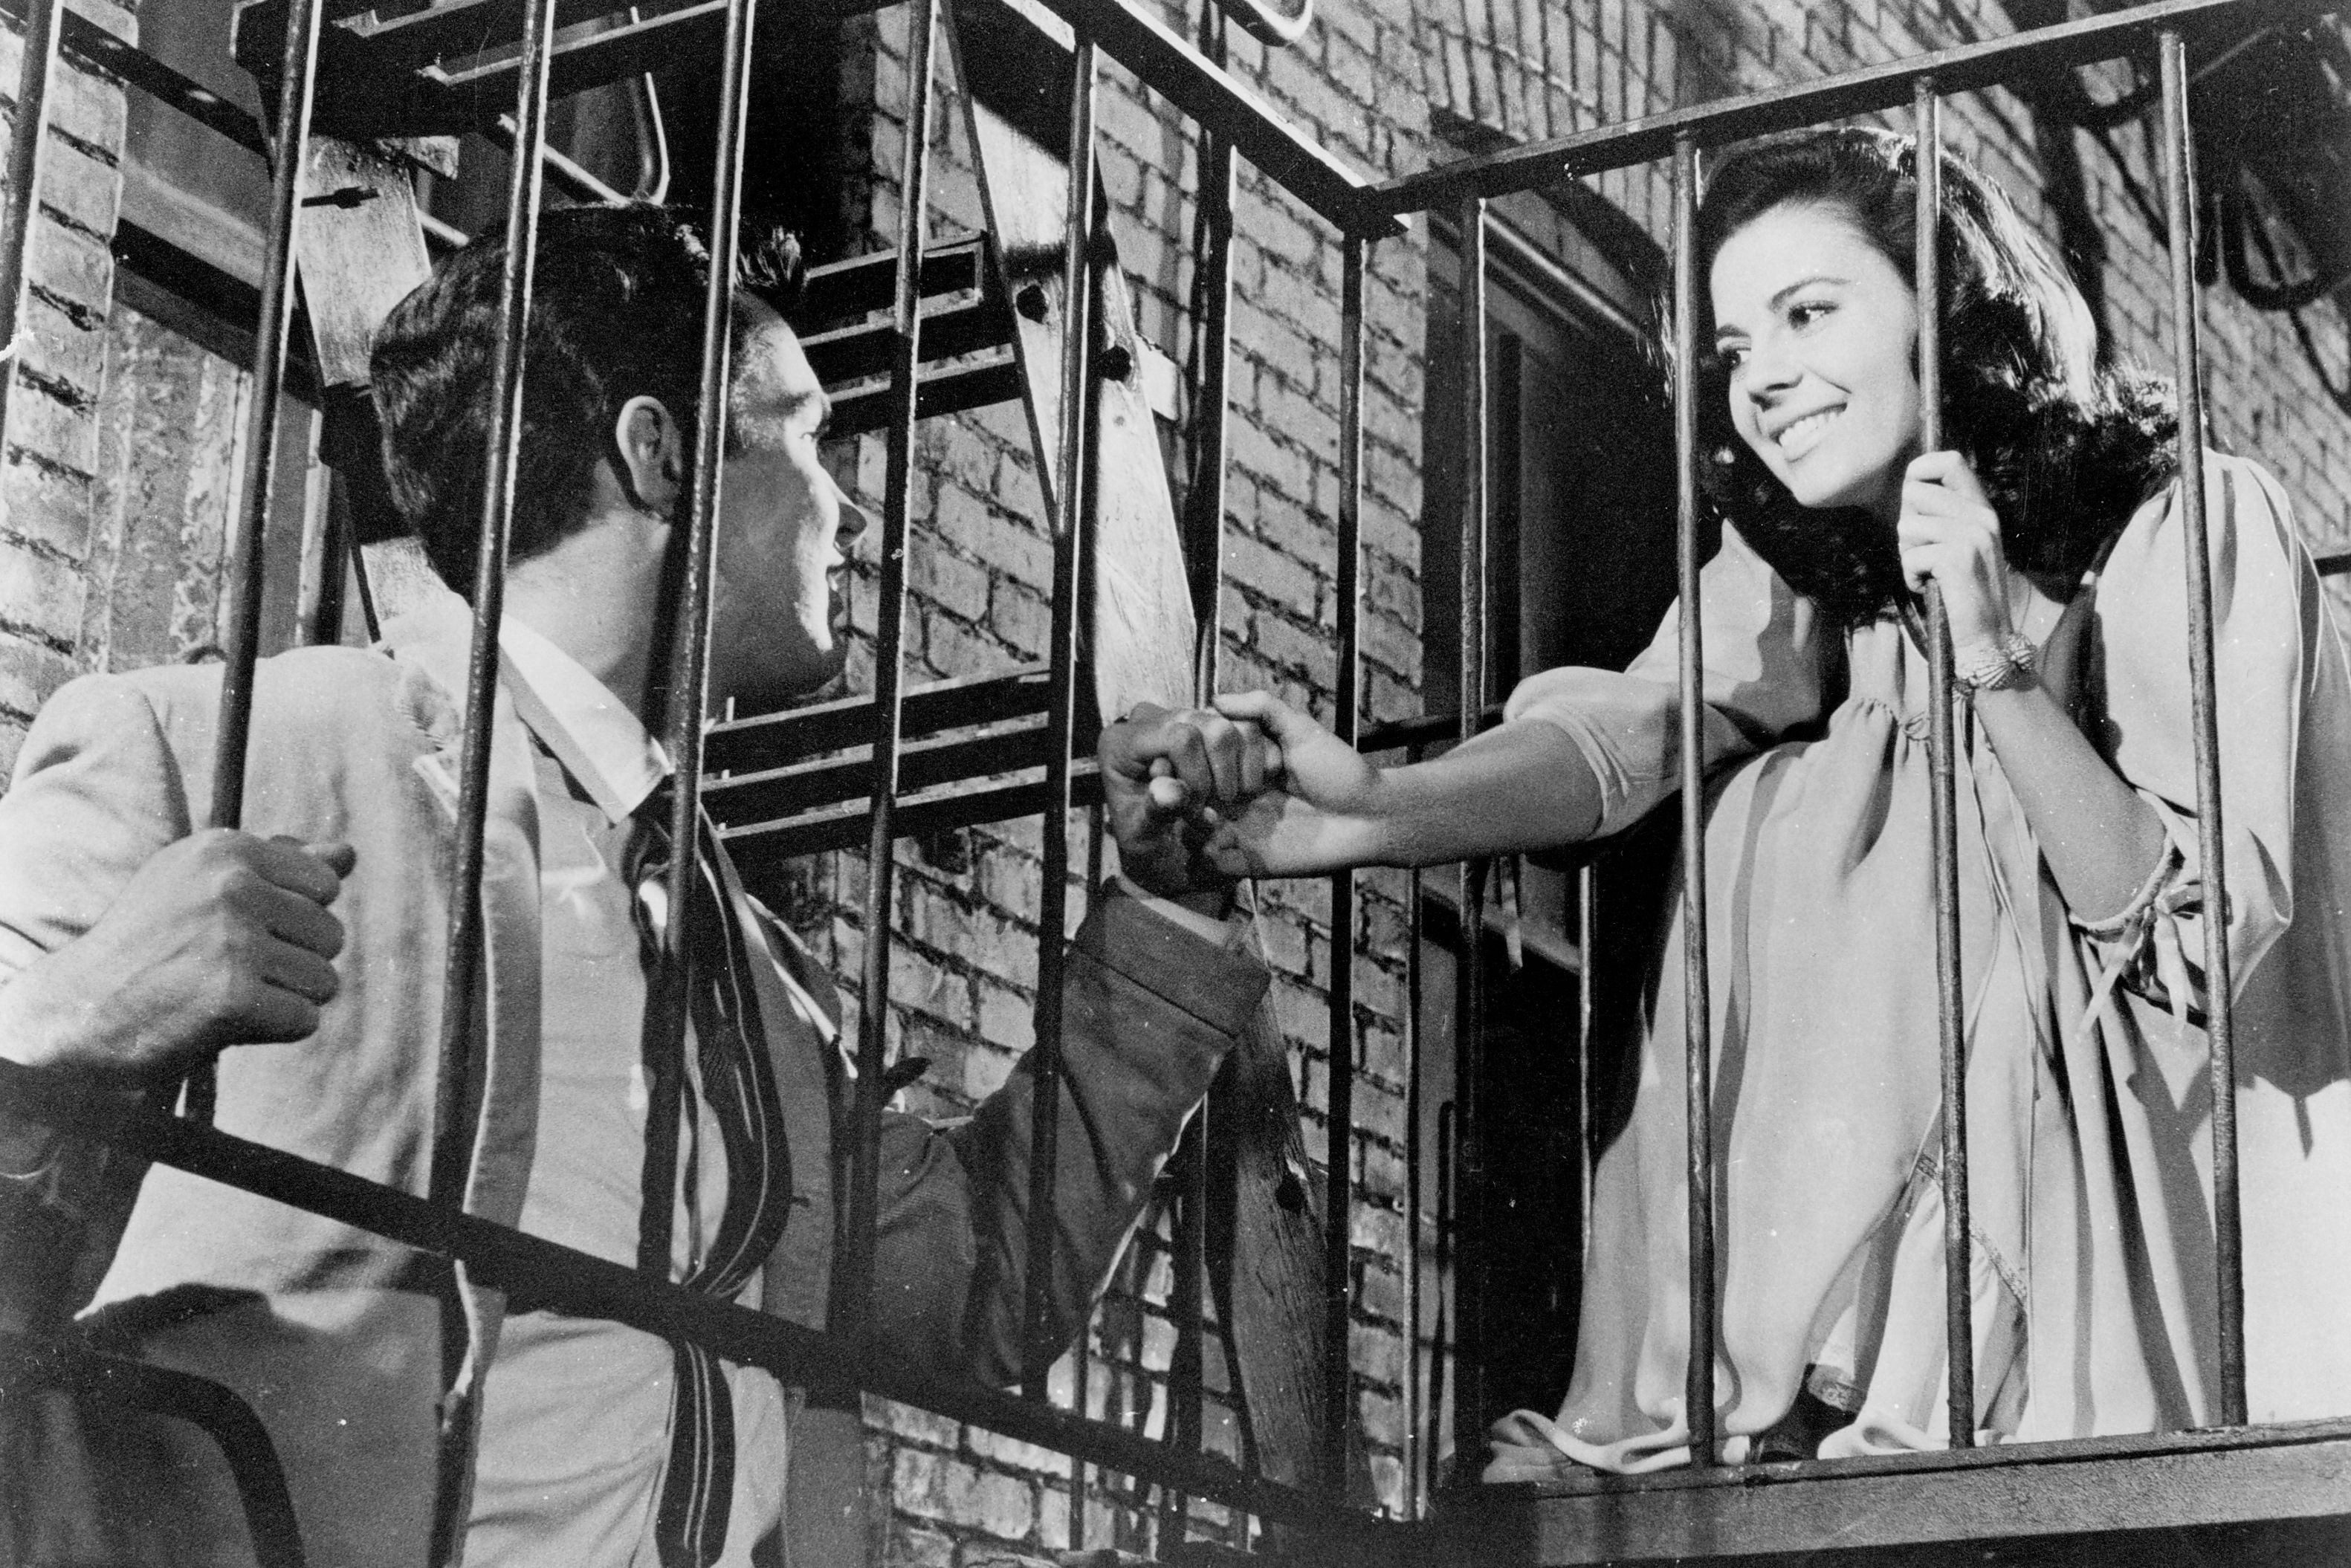 What You Need to Know about the West Side Story Remake